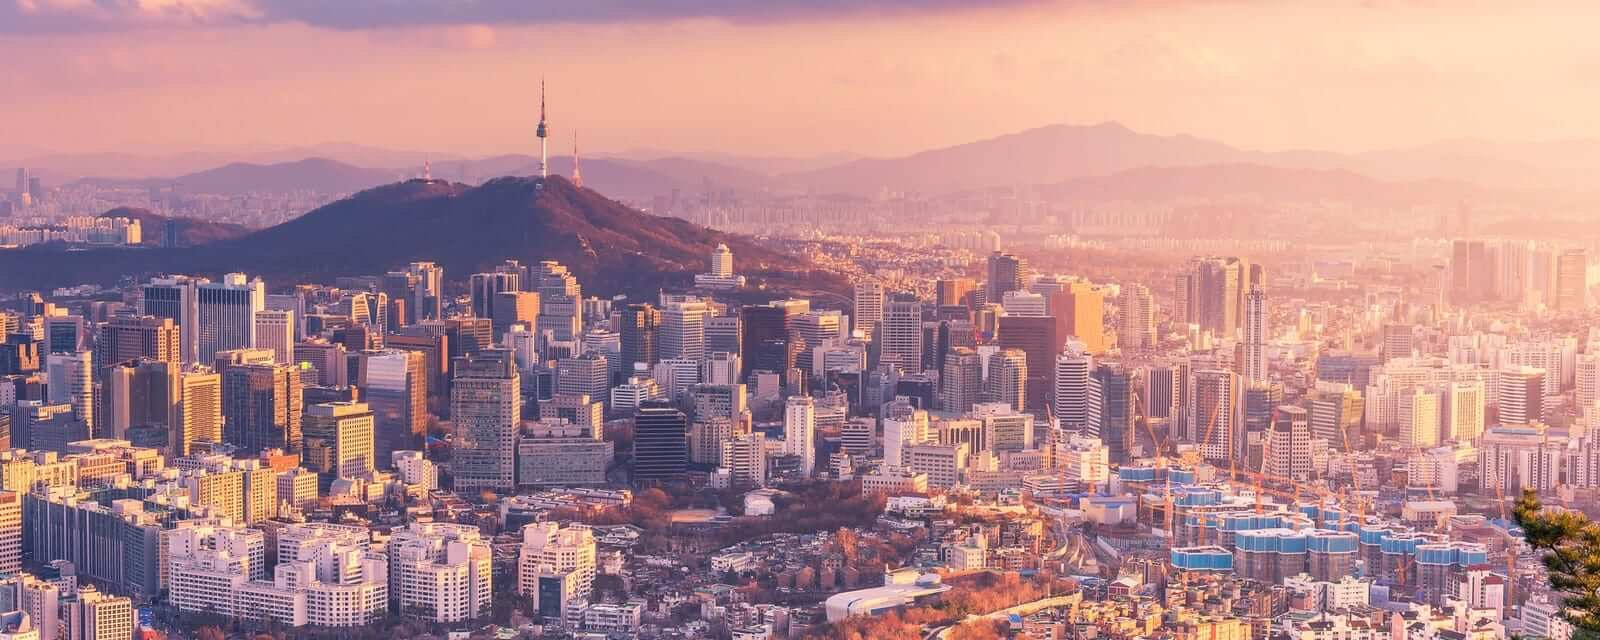 south-korea-cityscape